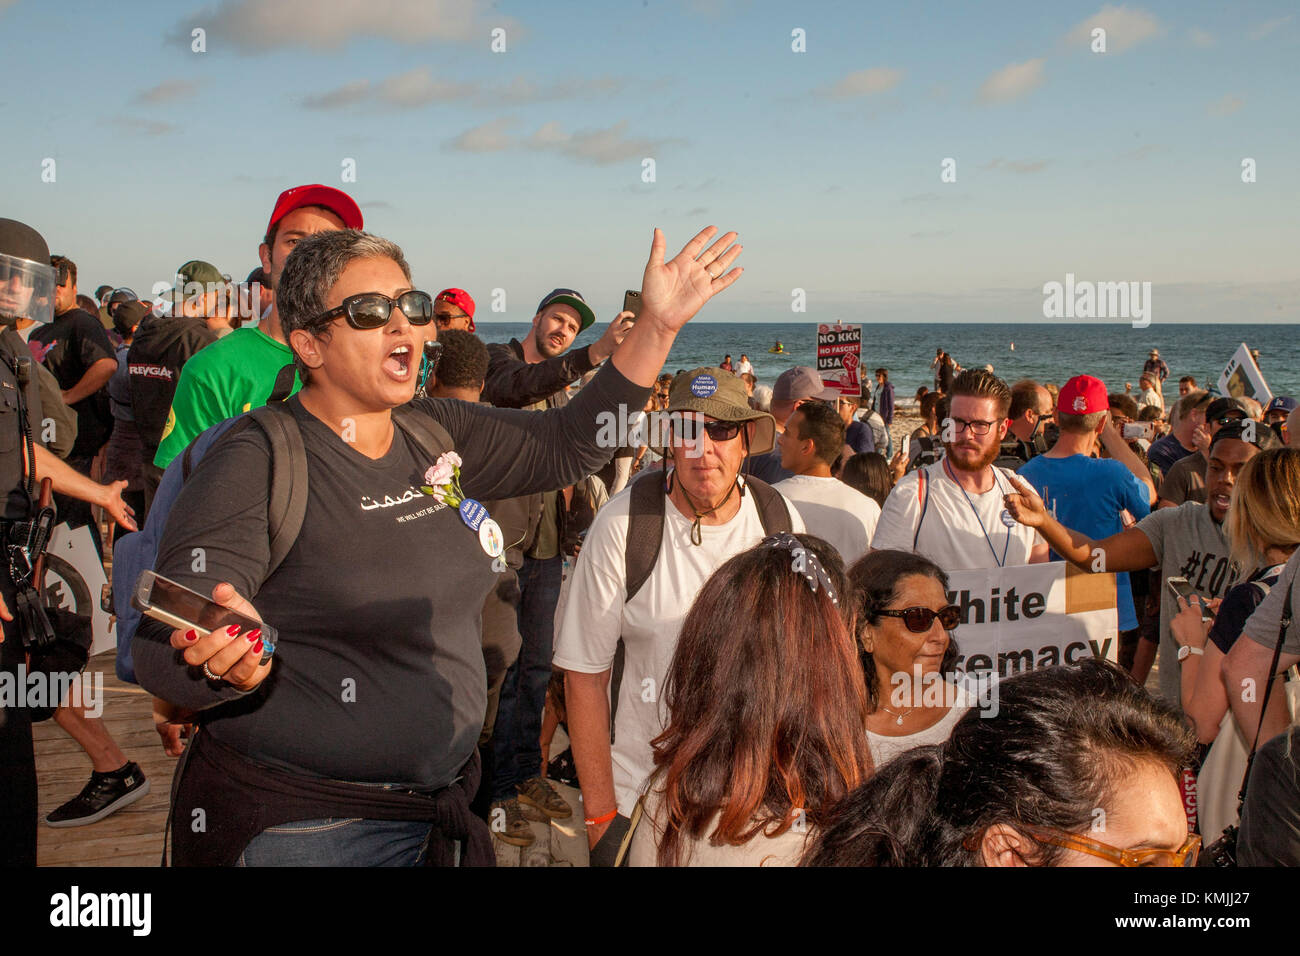 Multiracial counter demonstrators express their views in Laguna Beach, CA, in opposition to an adjacent anti-immigrant - Stock Image